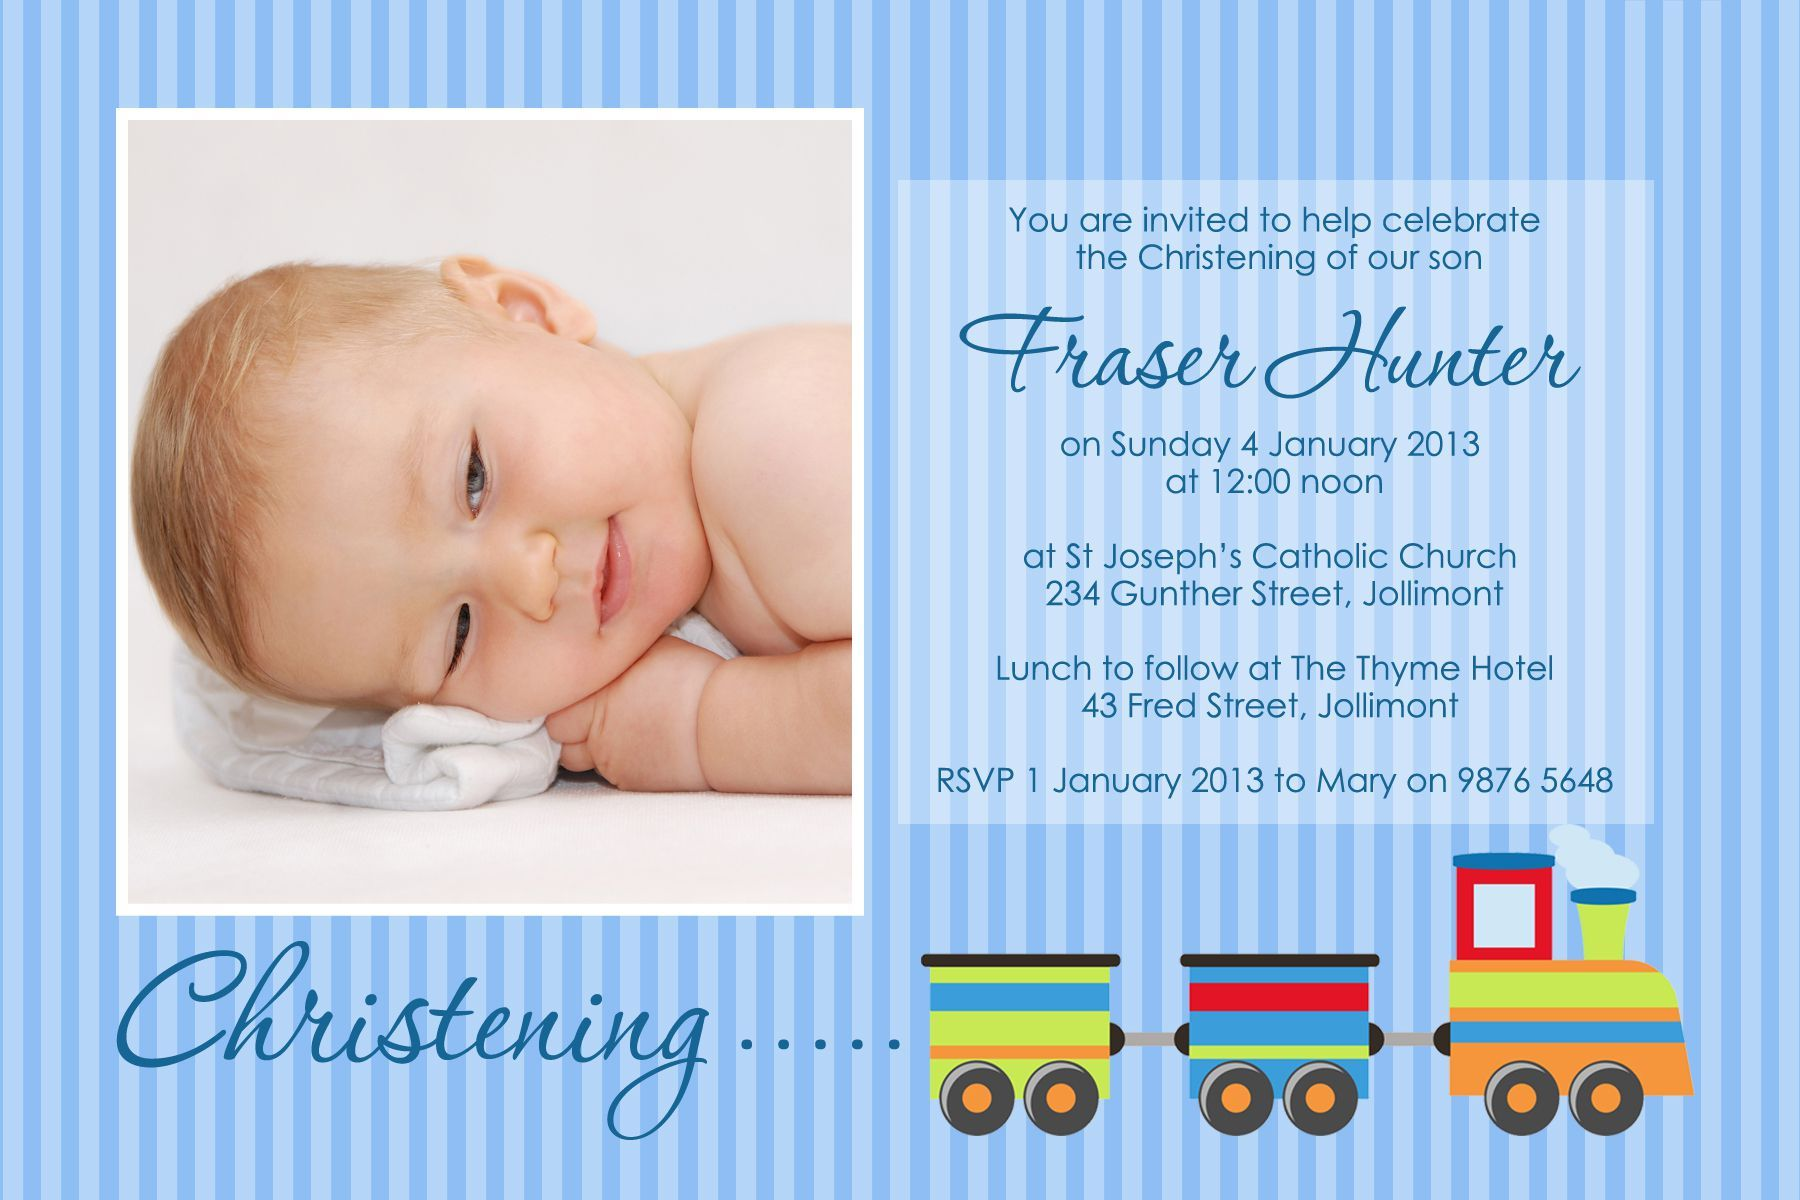 baptism-invitation-for-baby-boy | baptism invitations | Pinterest ...